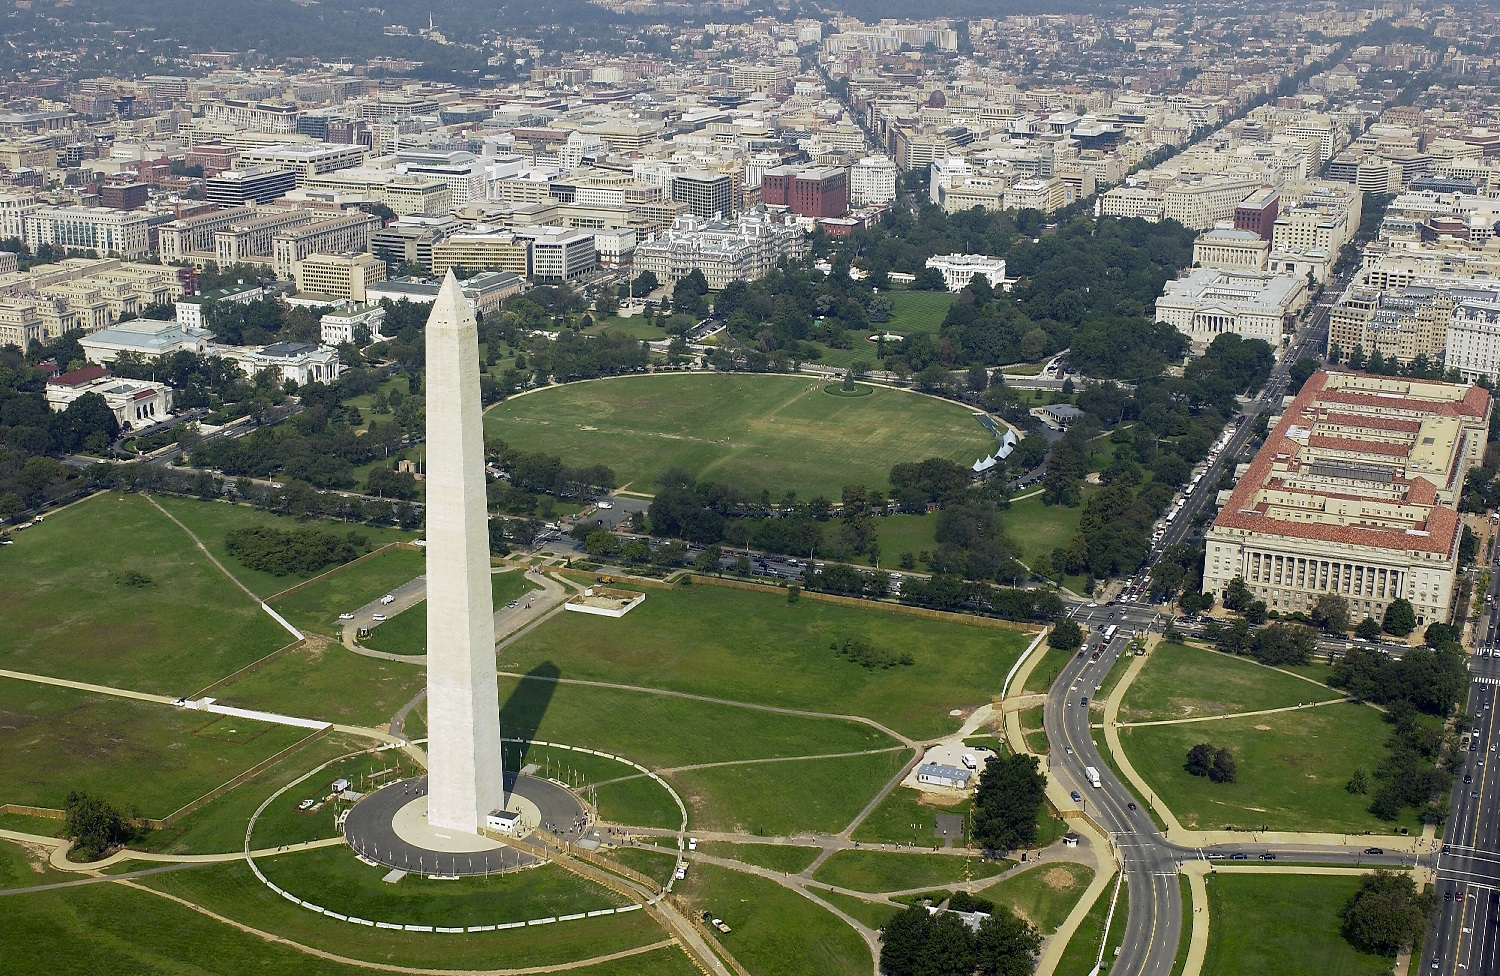 030926-F-2828D-080 Washington, D.C. (Sept. 26, 2003) -- Aerial view of the Washington Monument with the White House in the background.  DoD photo by Tech. Sgt. Andy Dunaway. (RELEASED)